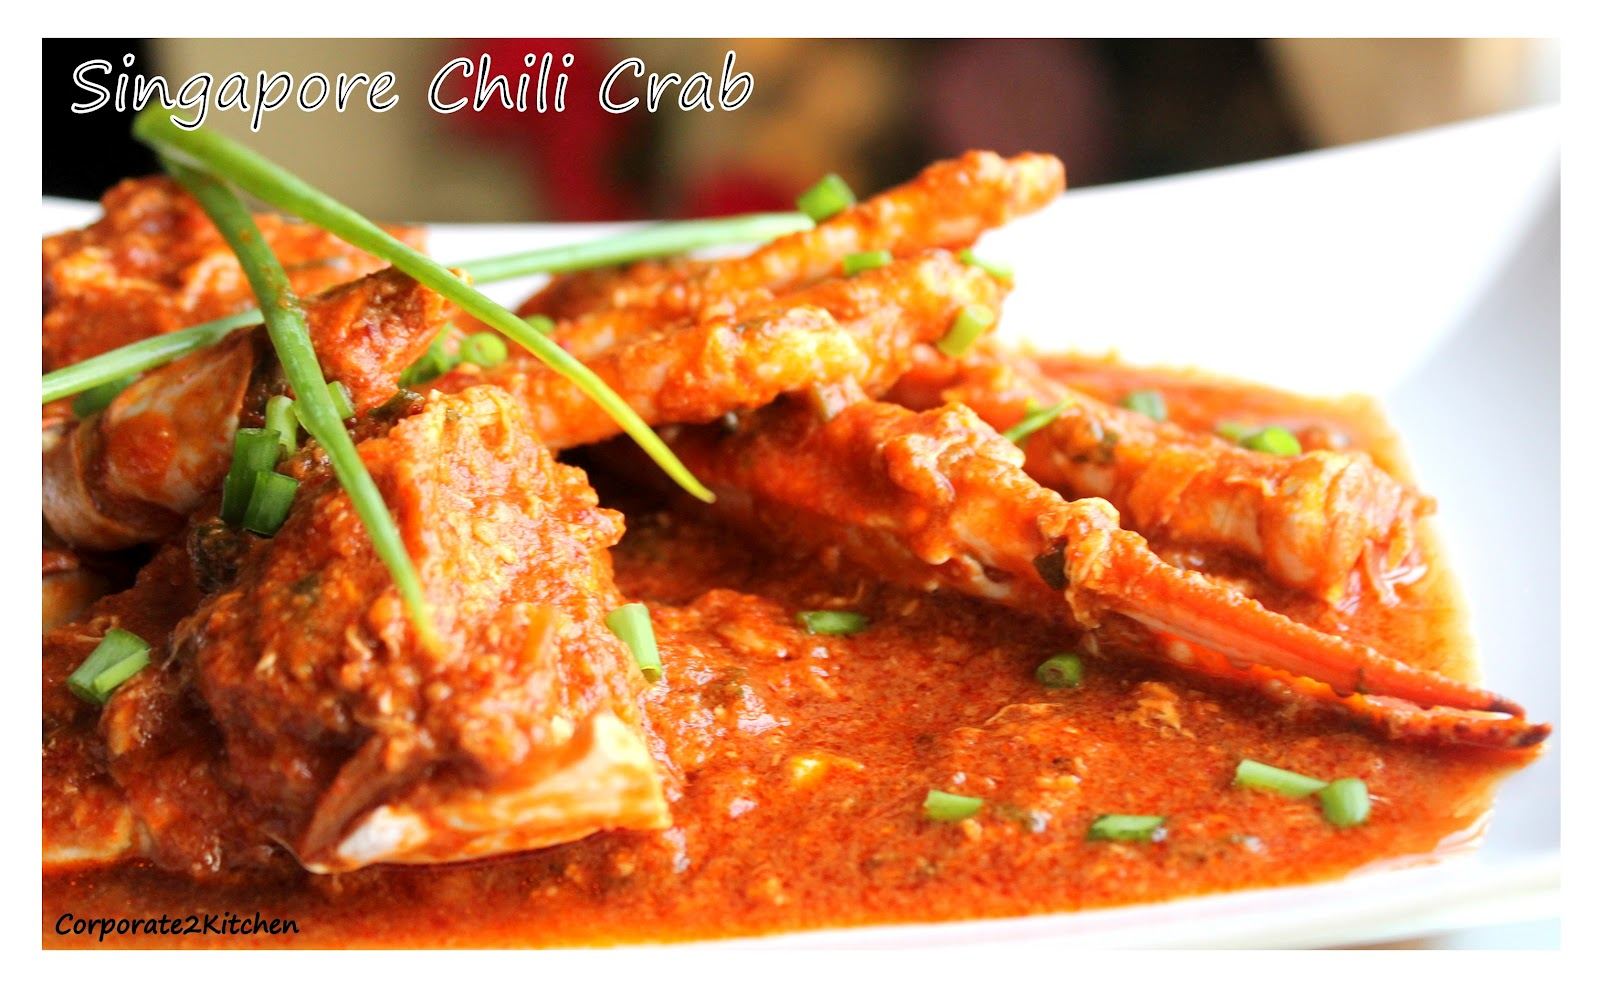 Korporate 2 Kitchen: Singapore Chili Crab